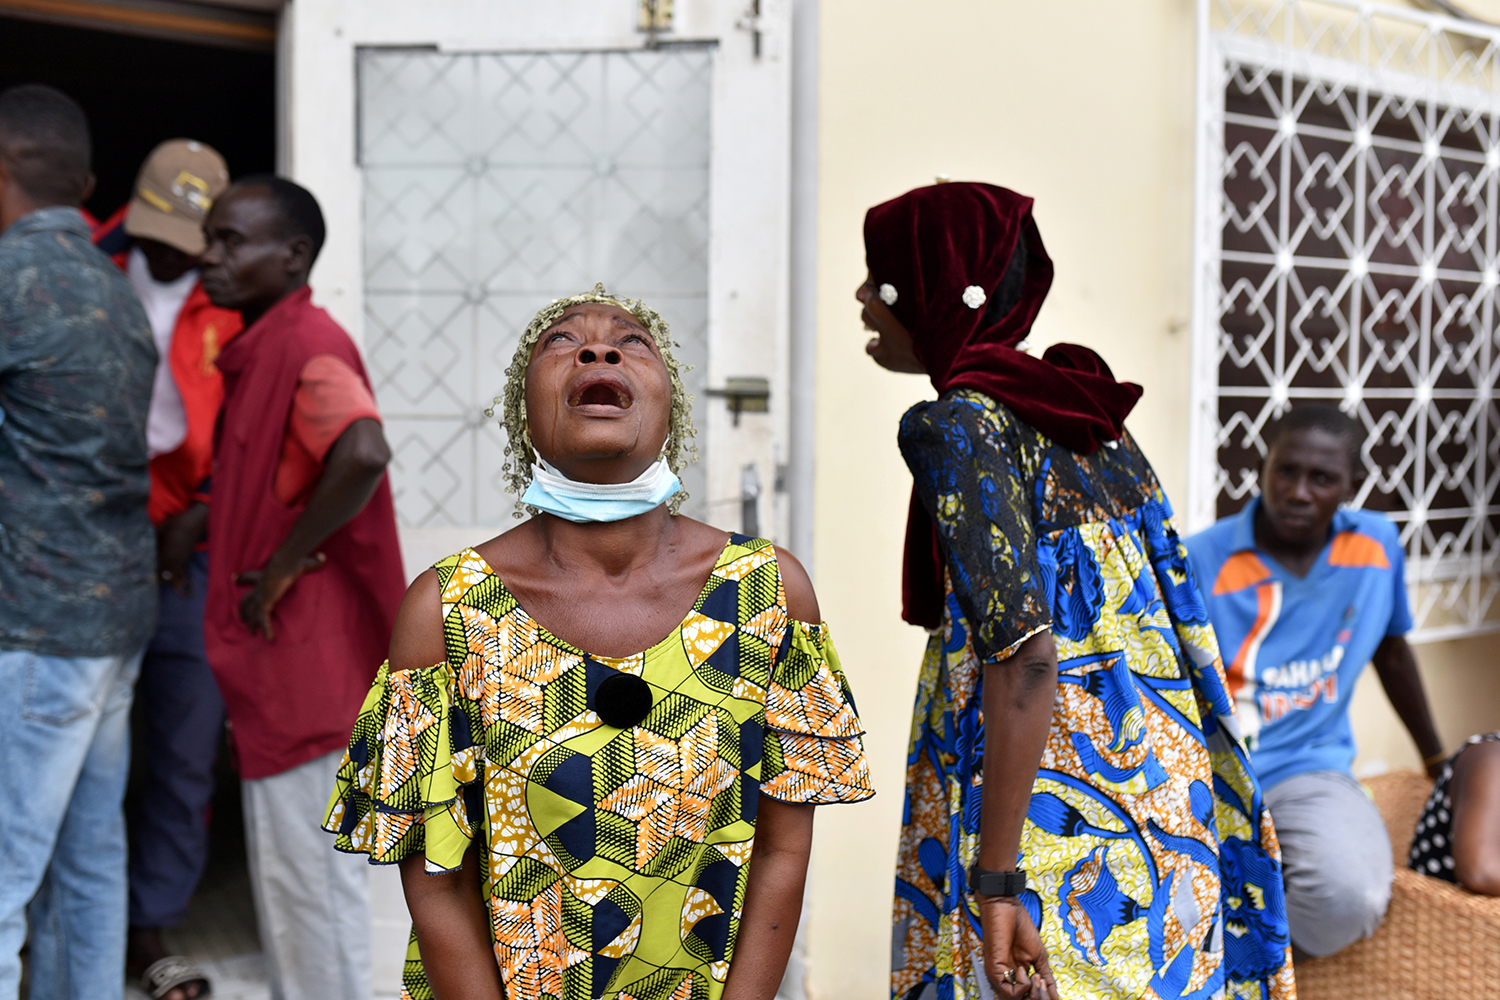 Women cry after hearing that Democratic Republic of the Congo presidential candidate Guy Brice Parfait Kolelas died from COVID-19 at the Union of Humanist Democrats offices in Brazzaville on March 22. Olivia Acland/REUTERS